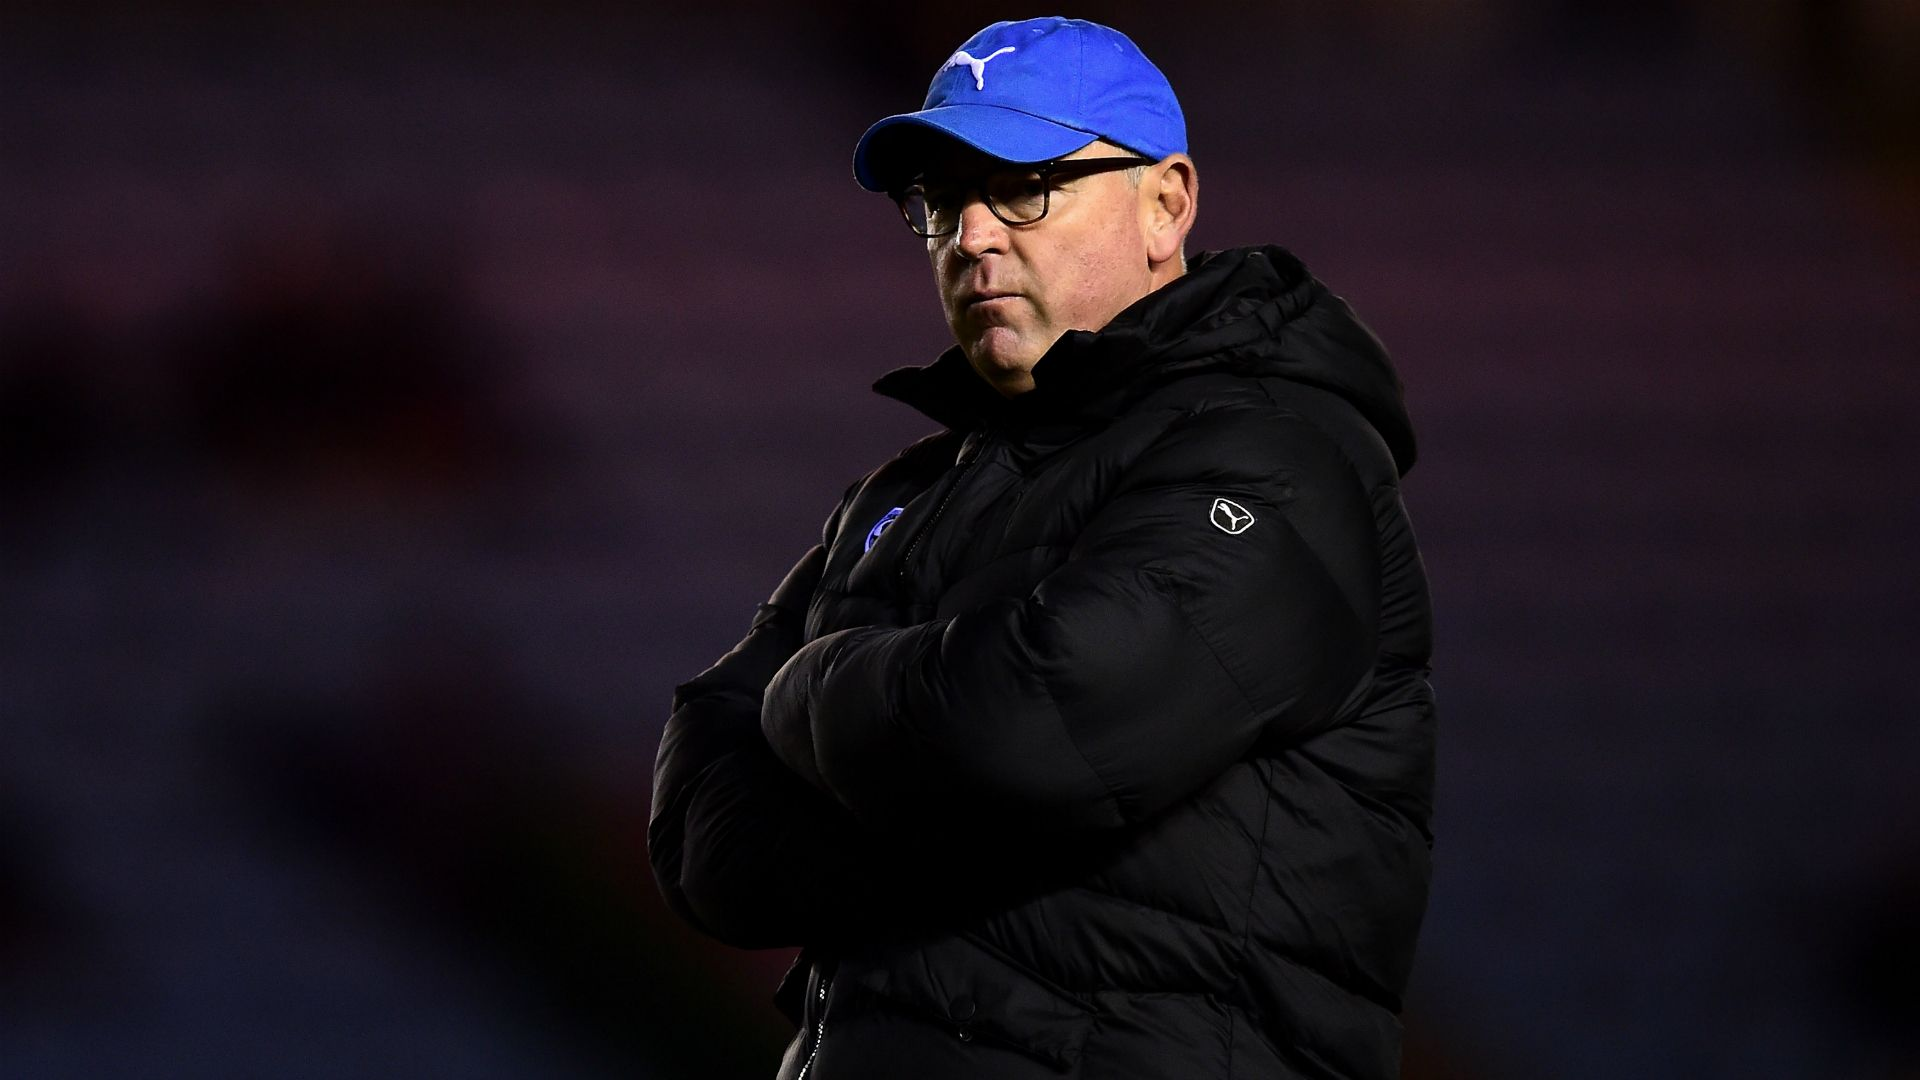 Blue Bulls appoint Jake White as Director of Rugby - Sports Leo